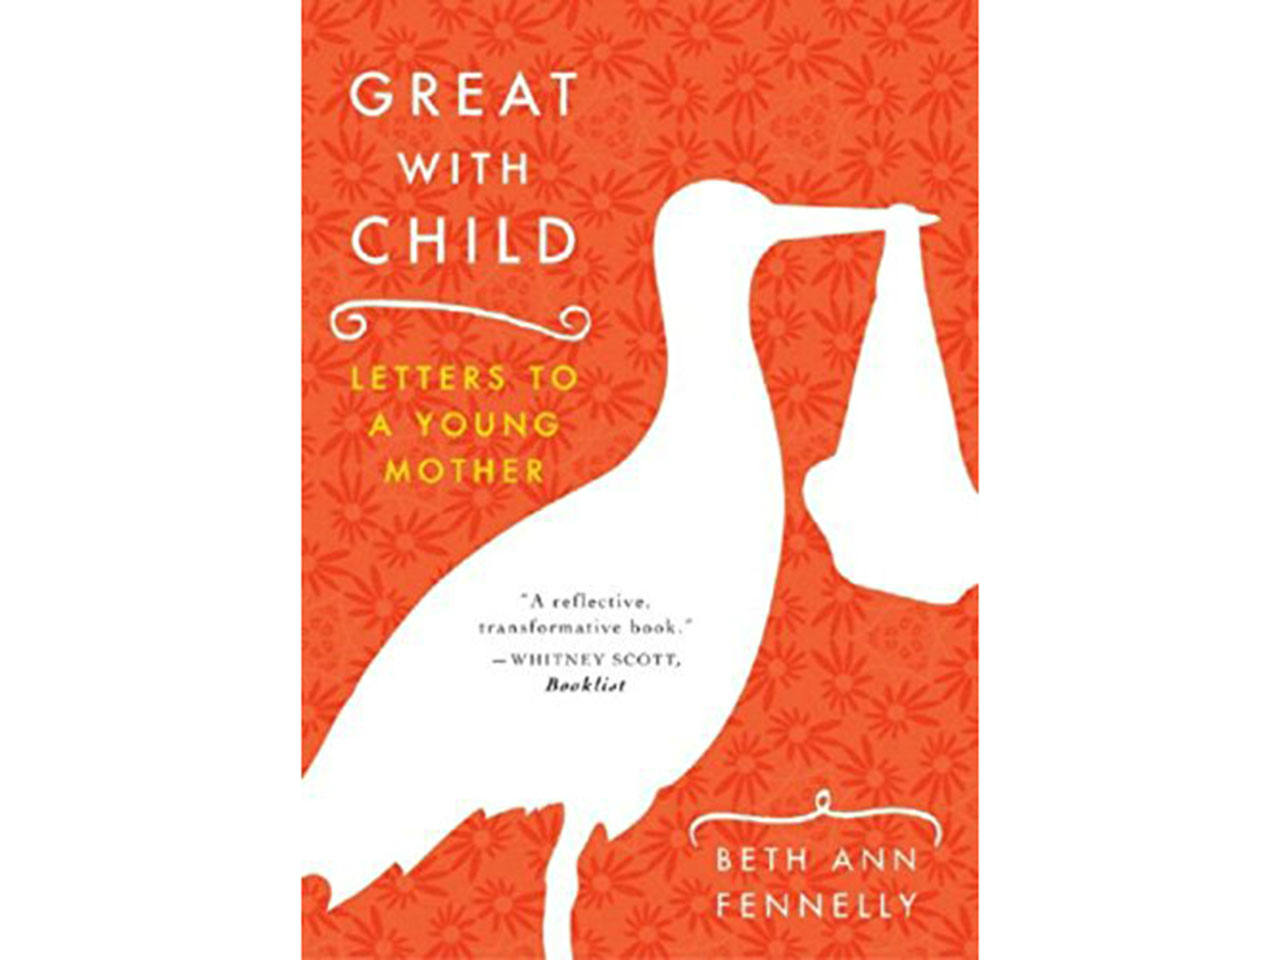 A Cover Of The Book Great With Child: Letters To A Young Mother